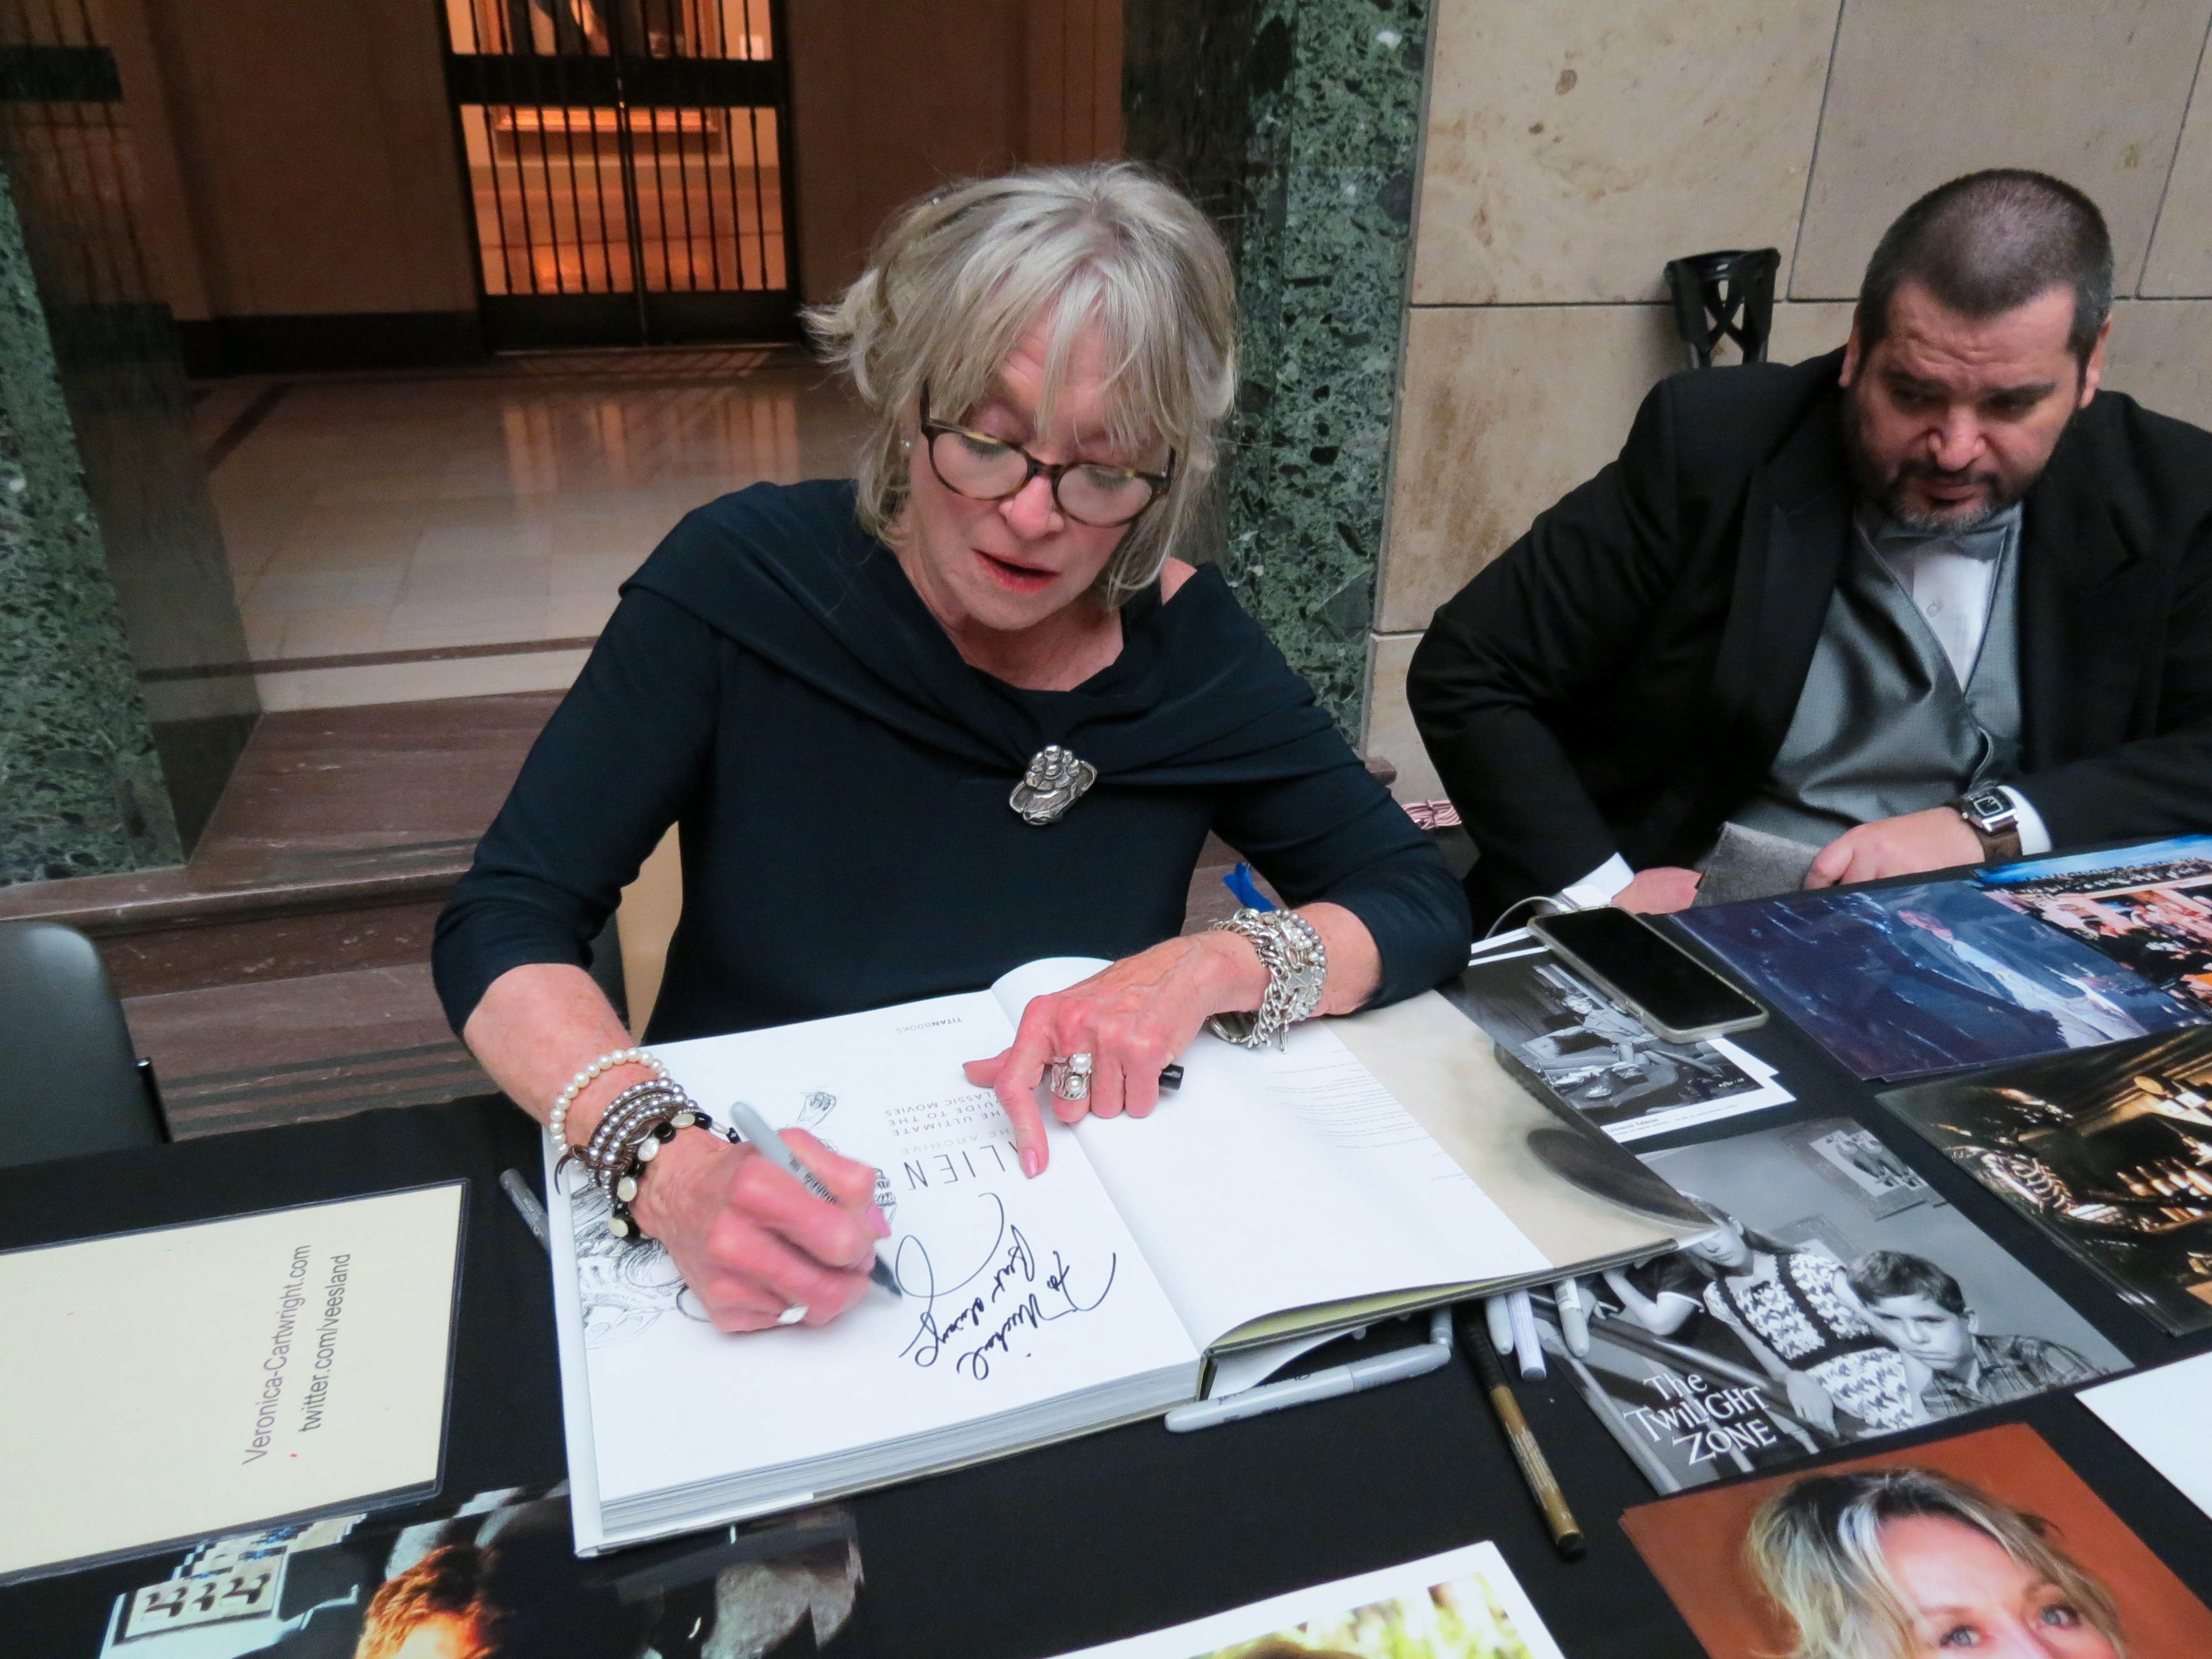 Meeting Veronica Cartwright